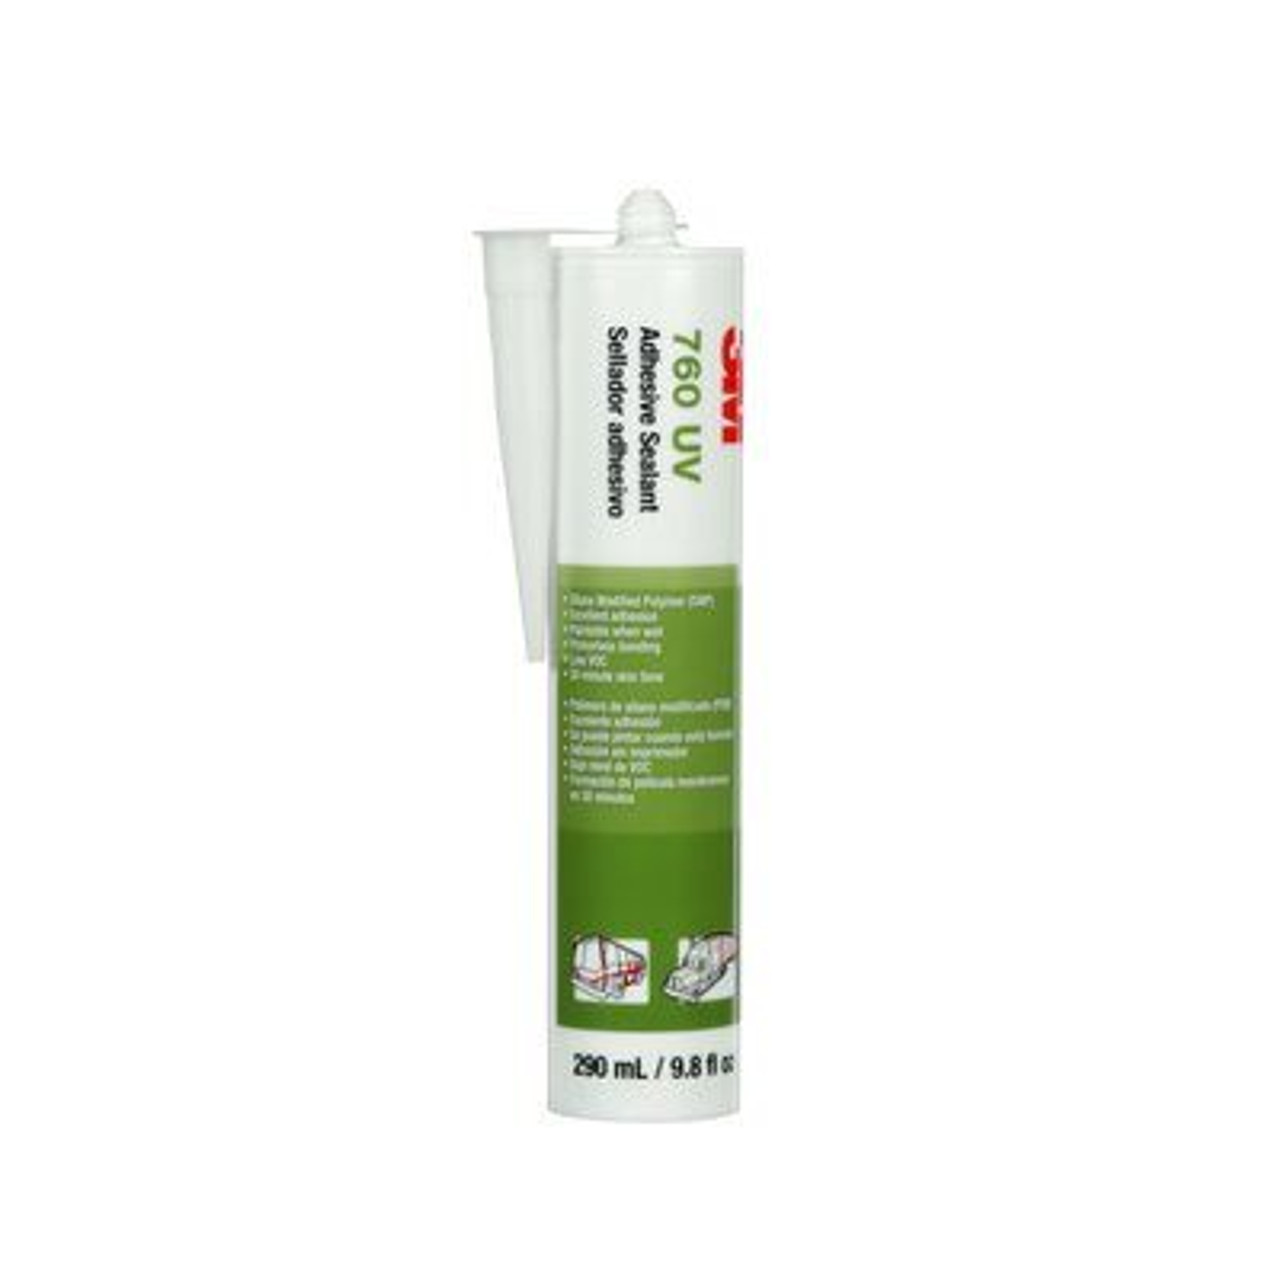 3M™ Adhesive Sealant 760 UV